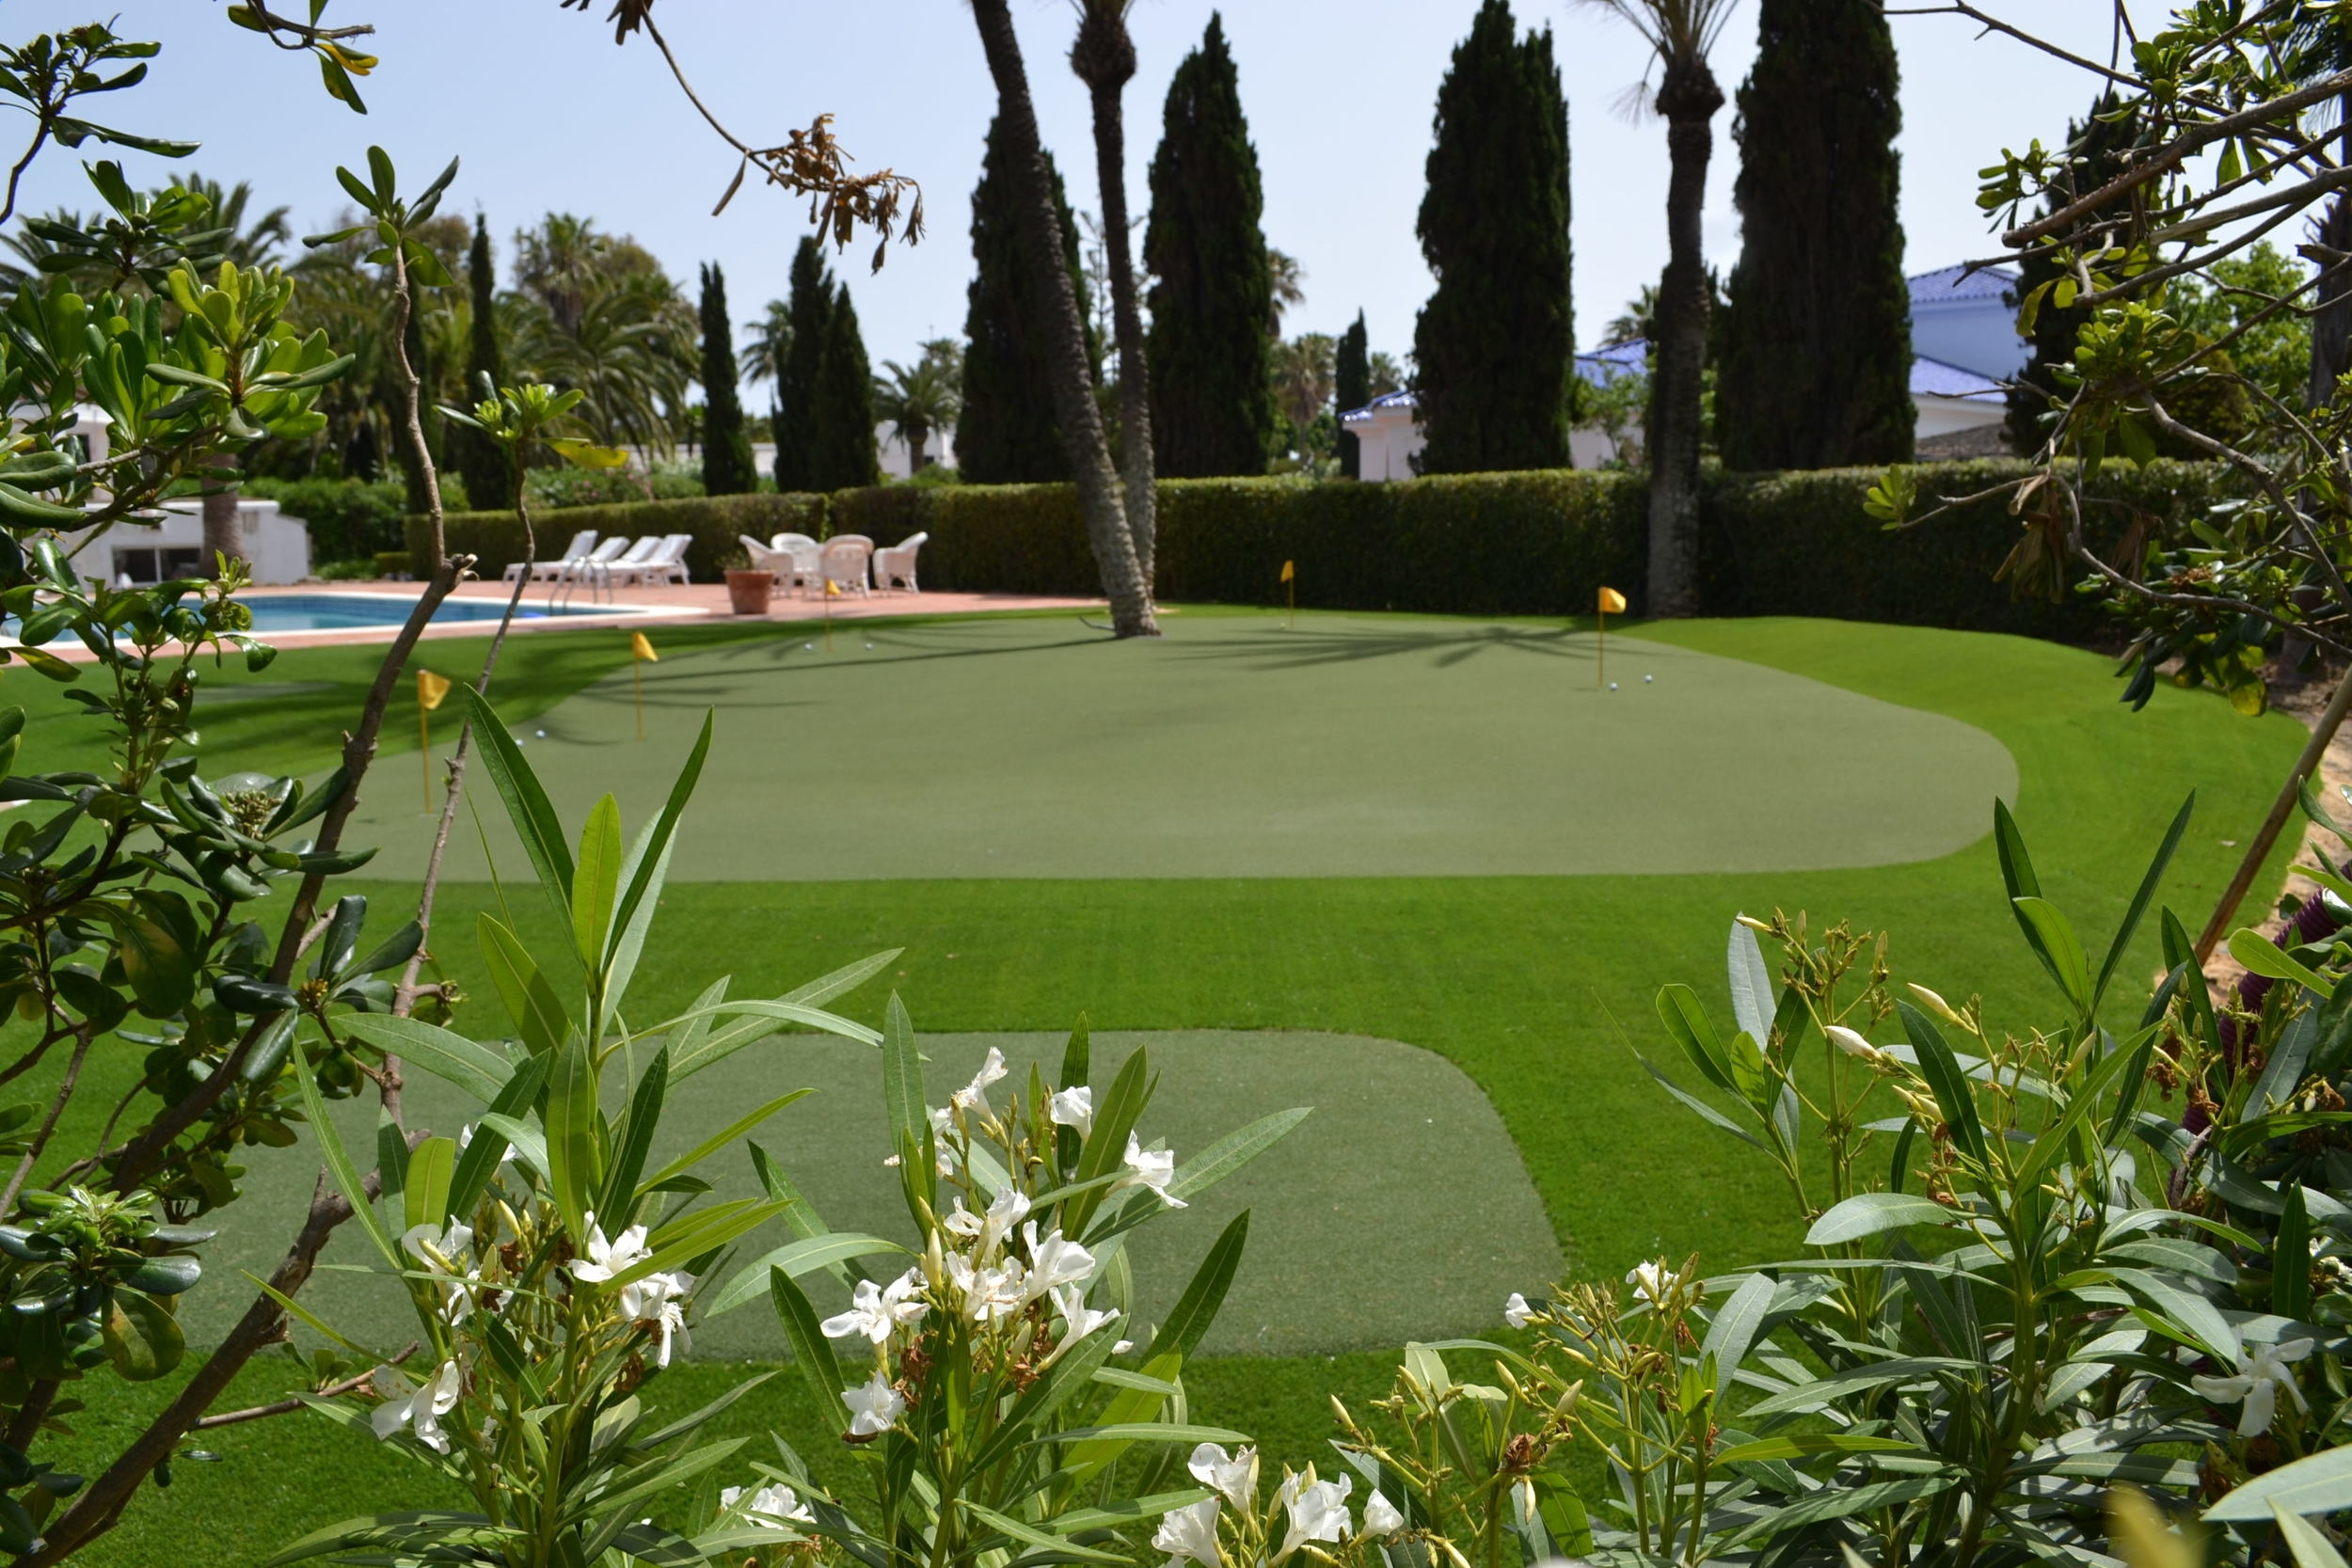 And here is the result: The putting / chipping green, Aimpoint measured with three different levels, two chipping stations and all neatly into the existing garden